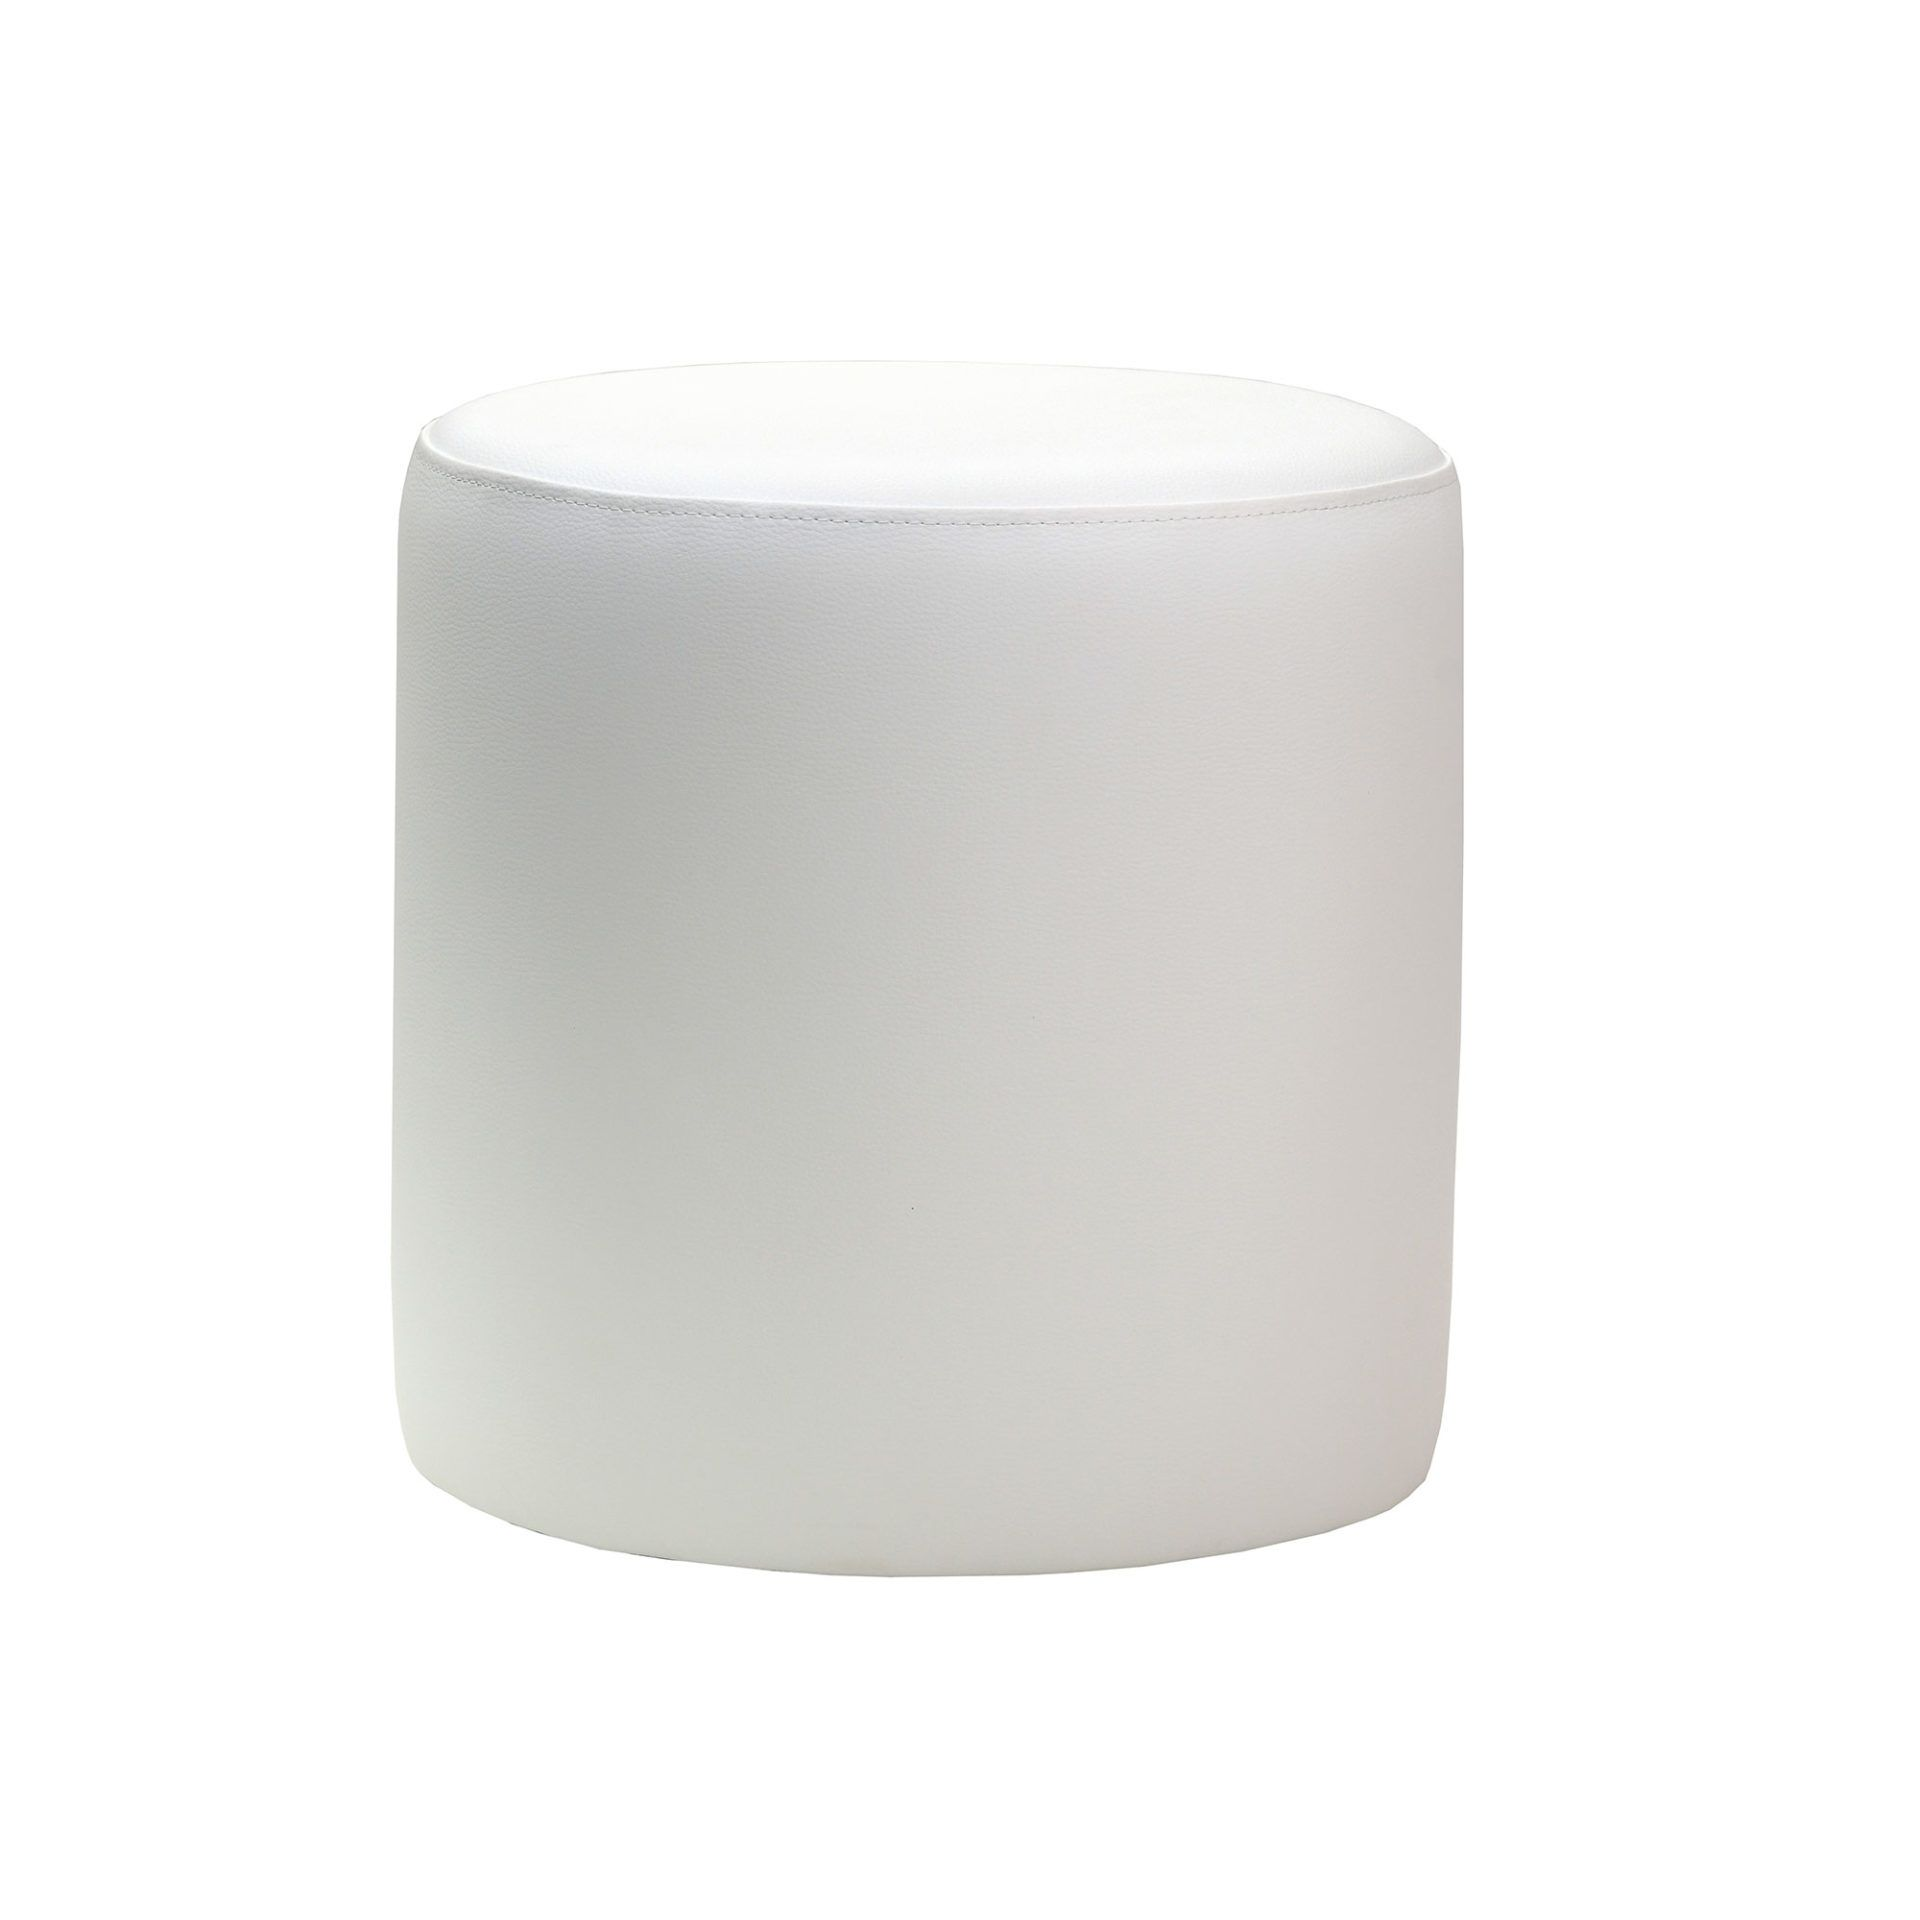 Ottoman Round- White - Made In Europe